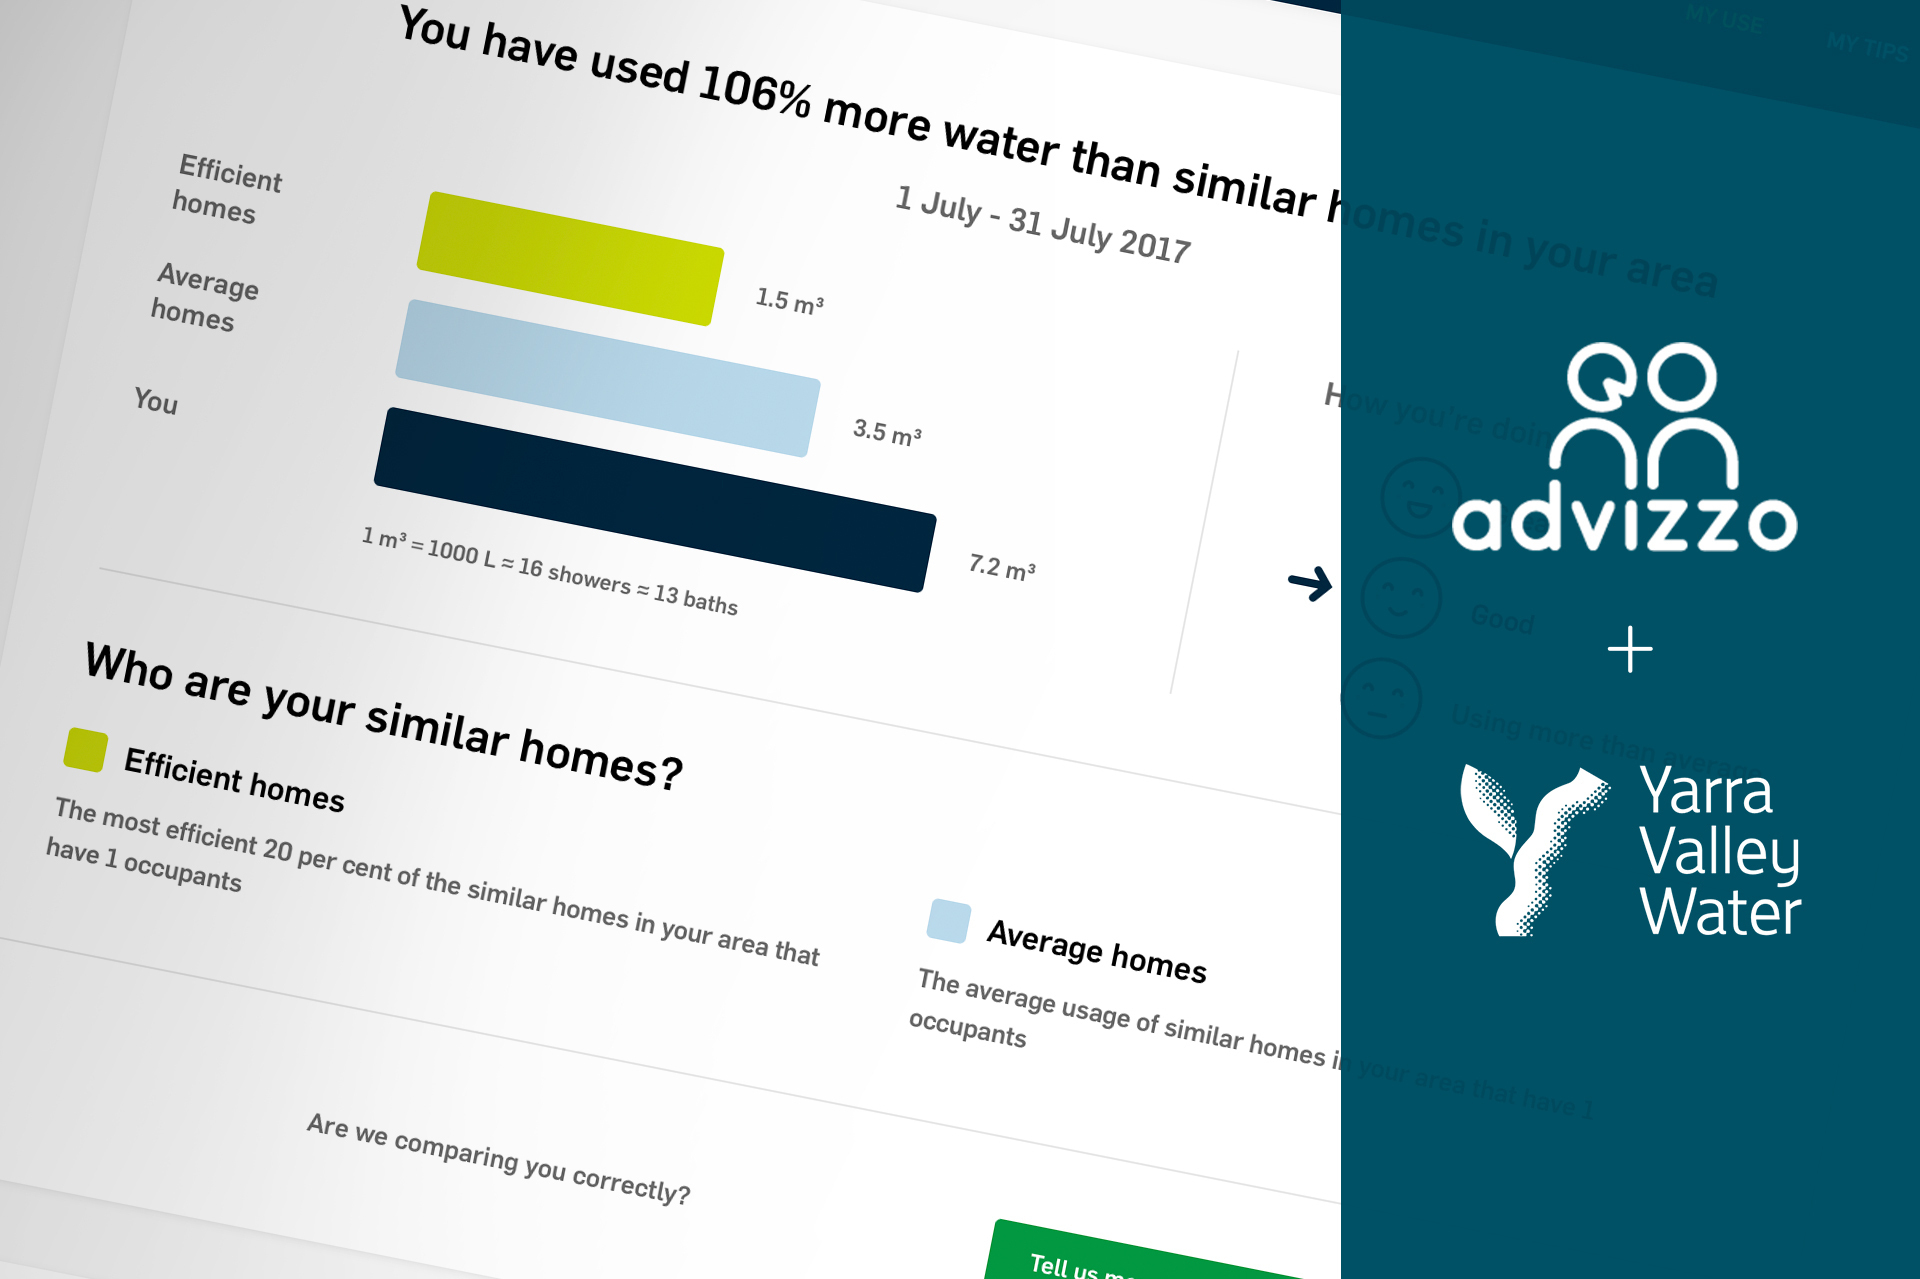 Yarra Valley Water deploys behavioural science methodology to assist water conservation